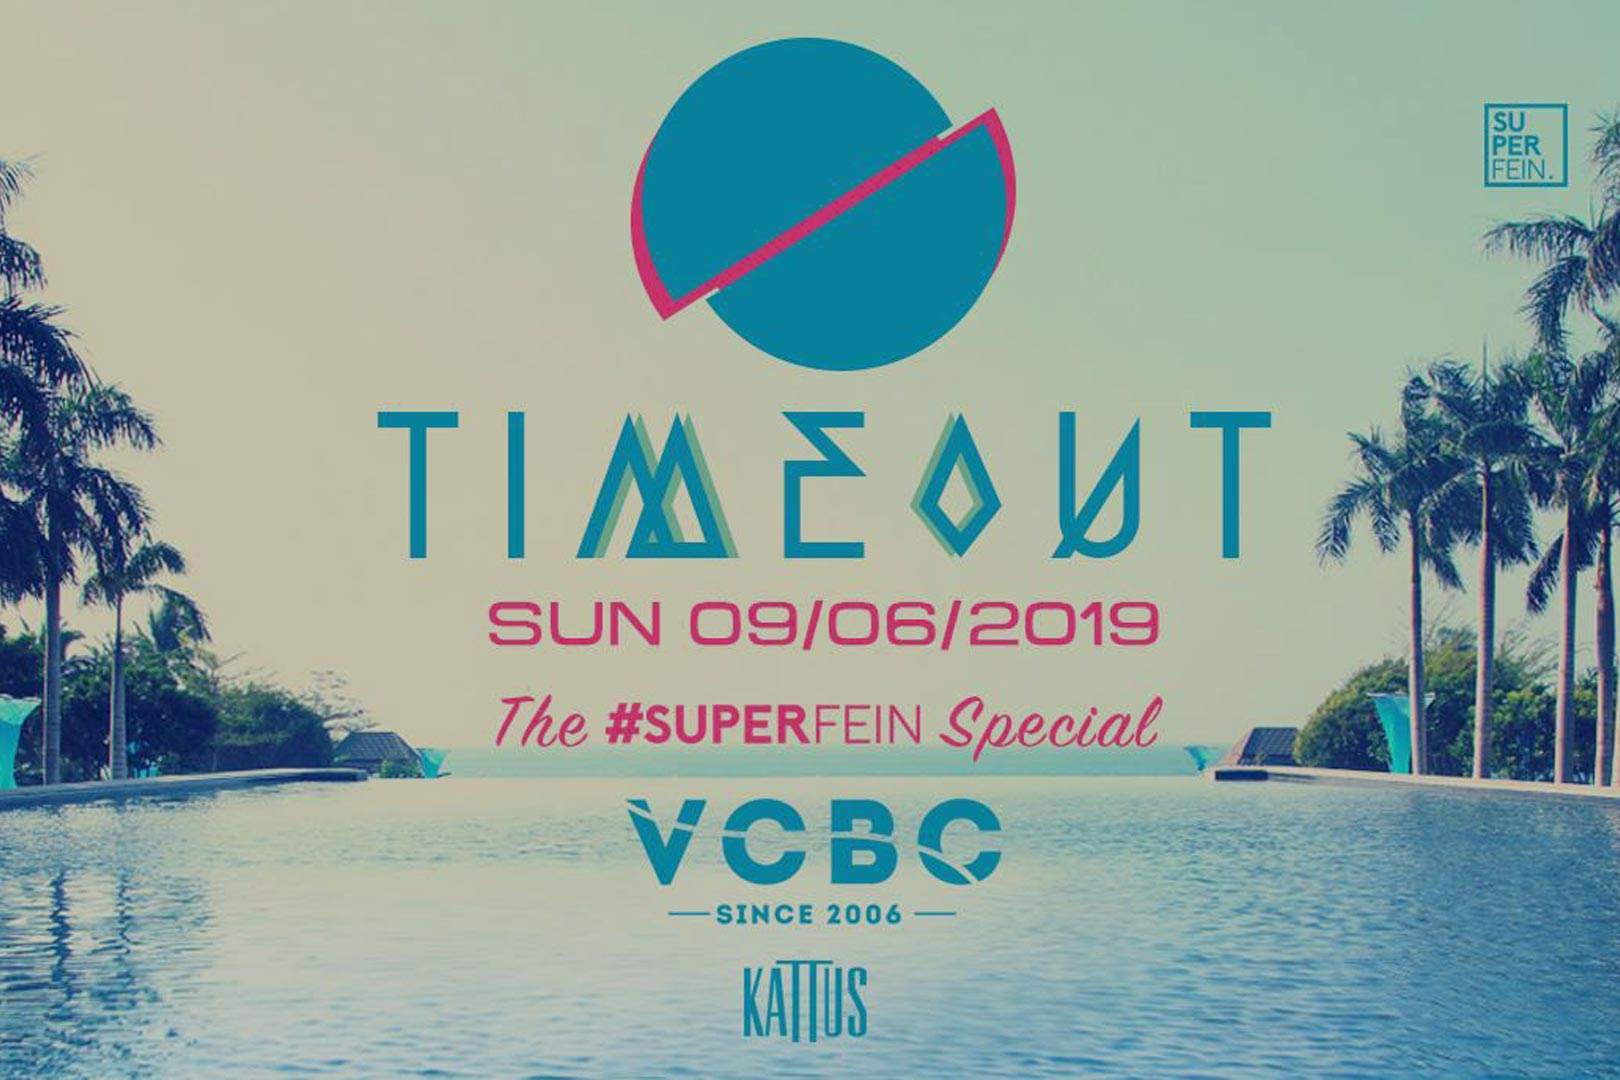 timeout superfein vcbc header